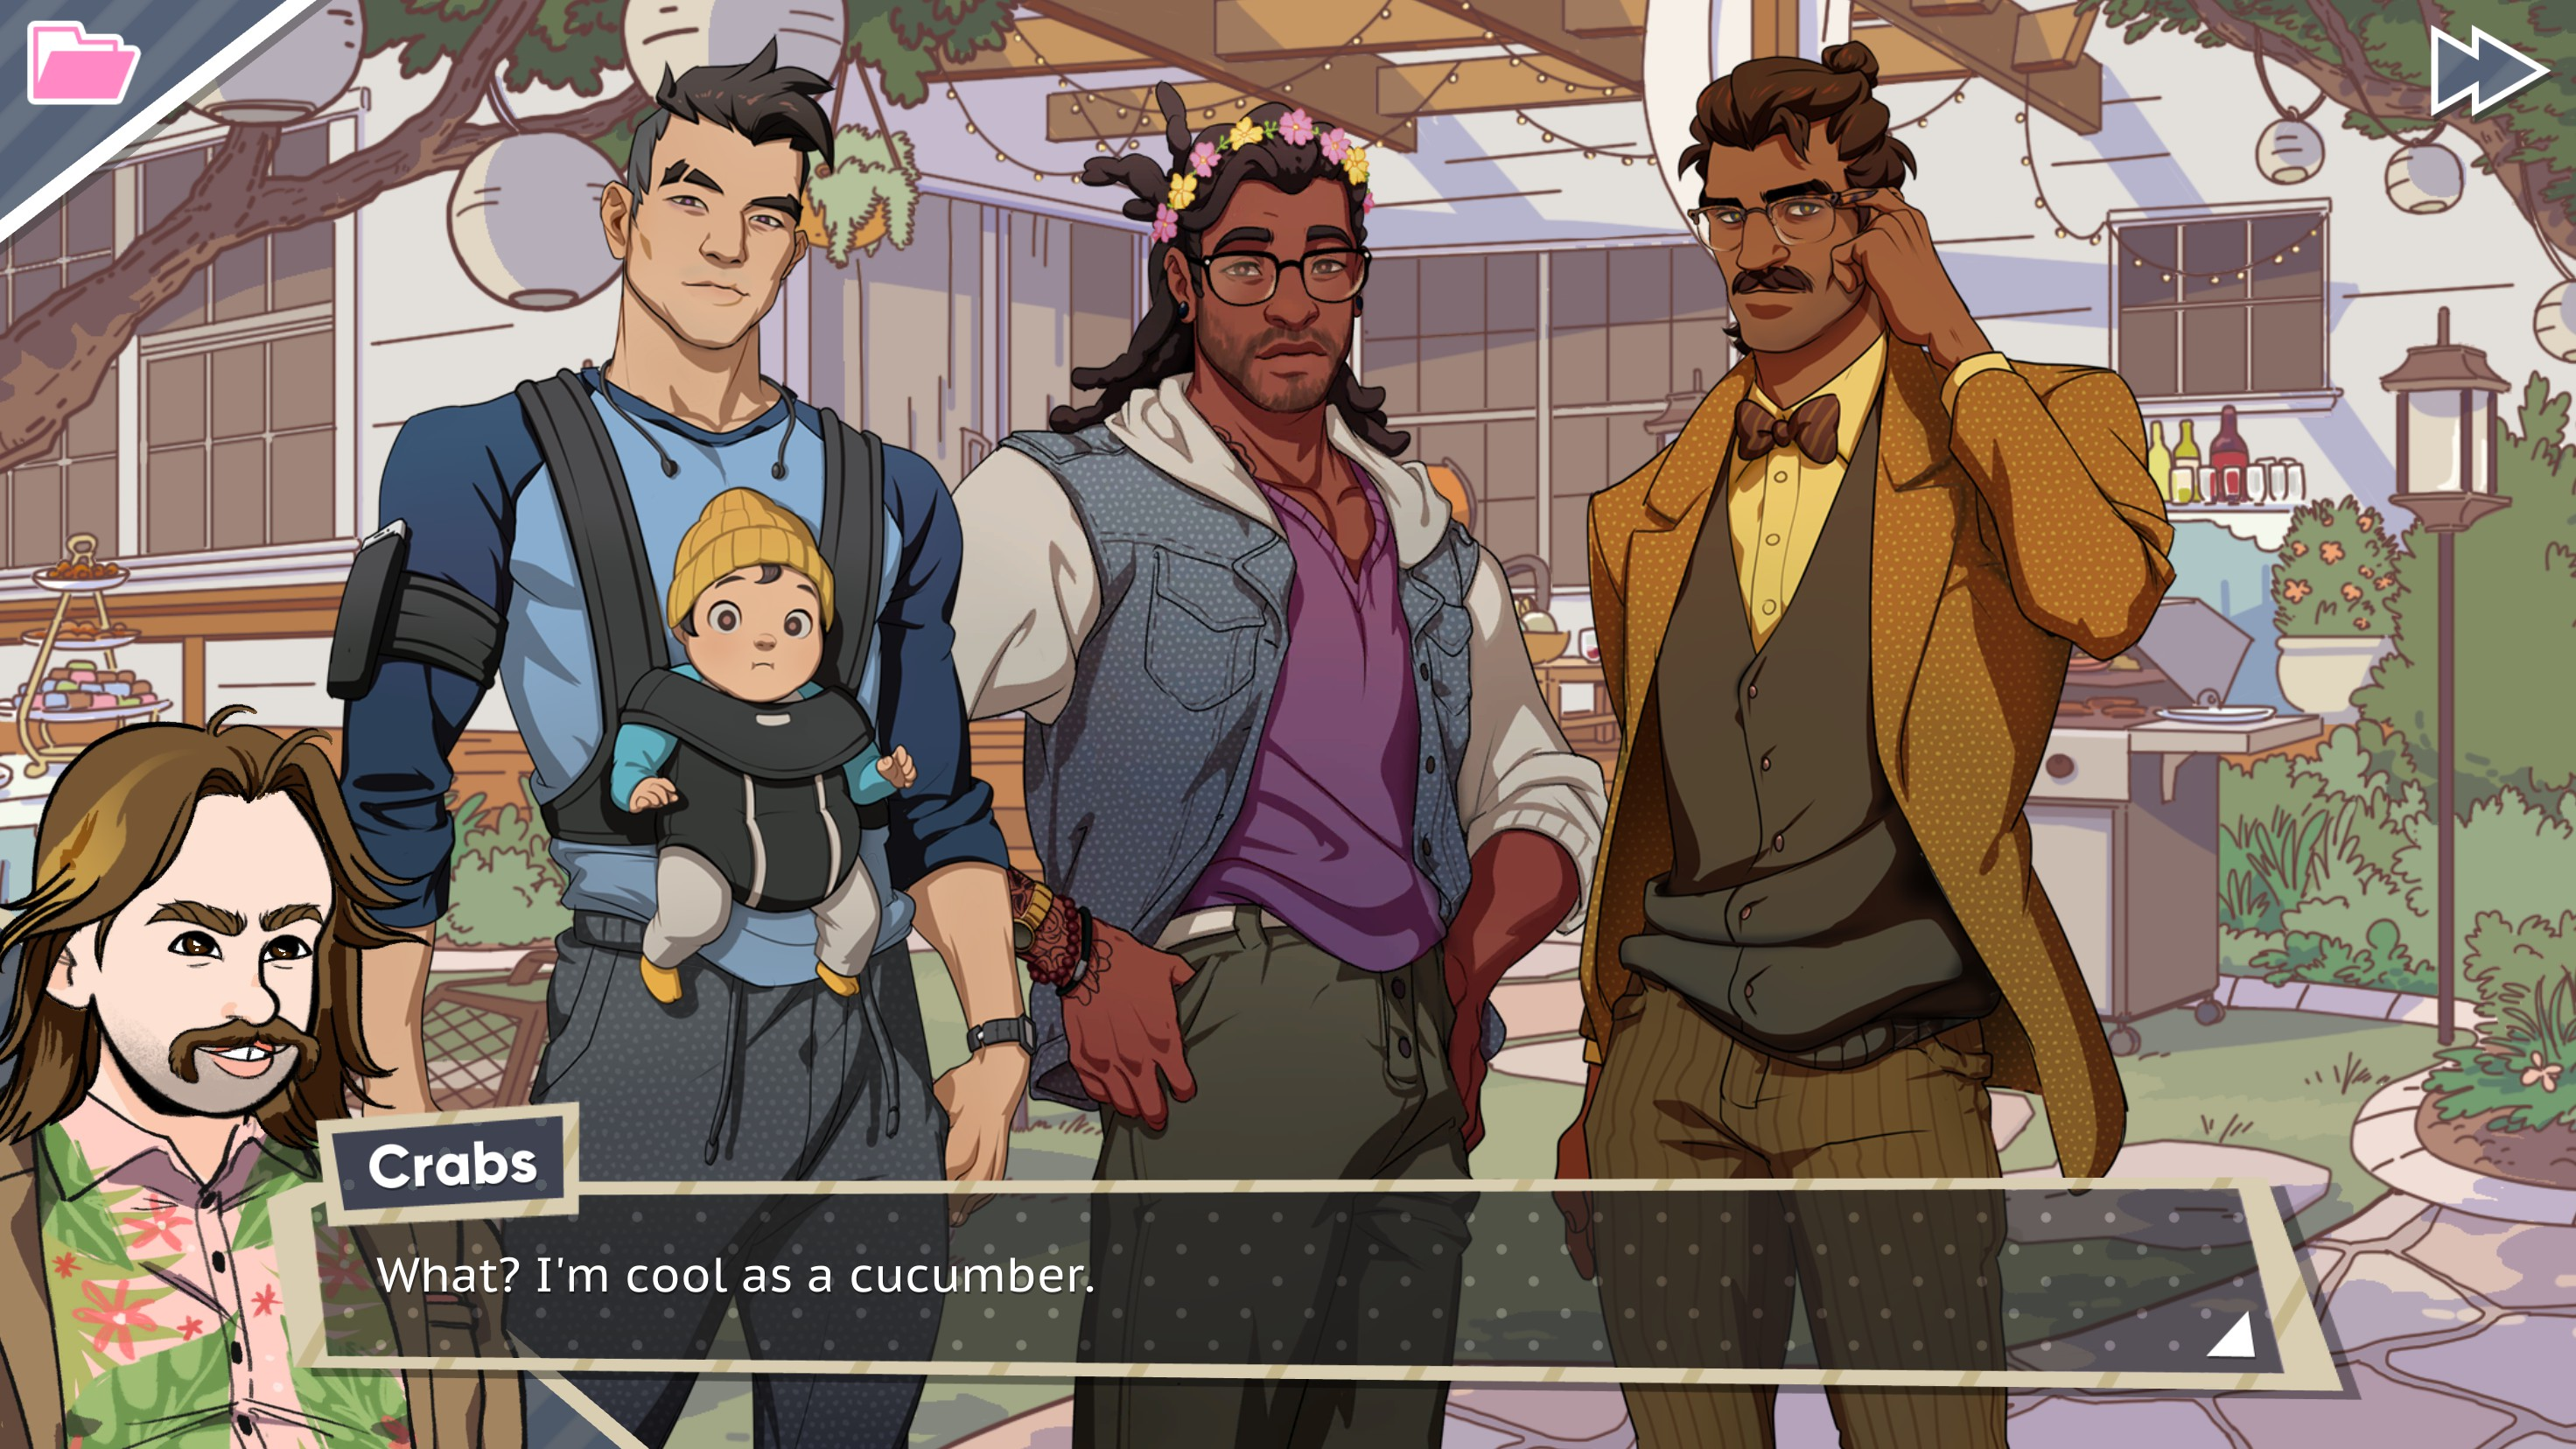 Amanda Dream Daddy dream daddy review: who are these people? | shacknews